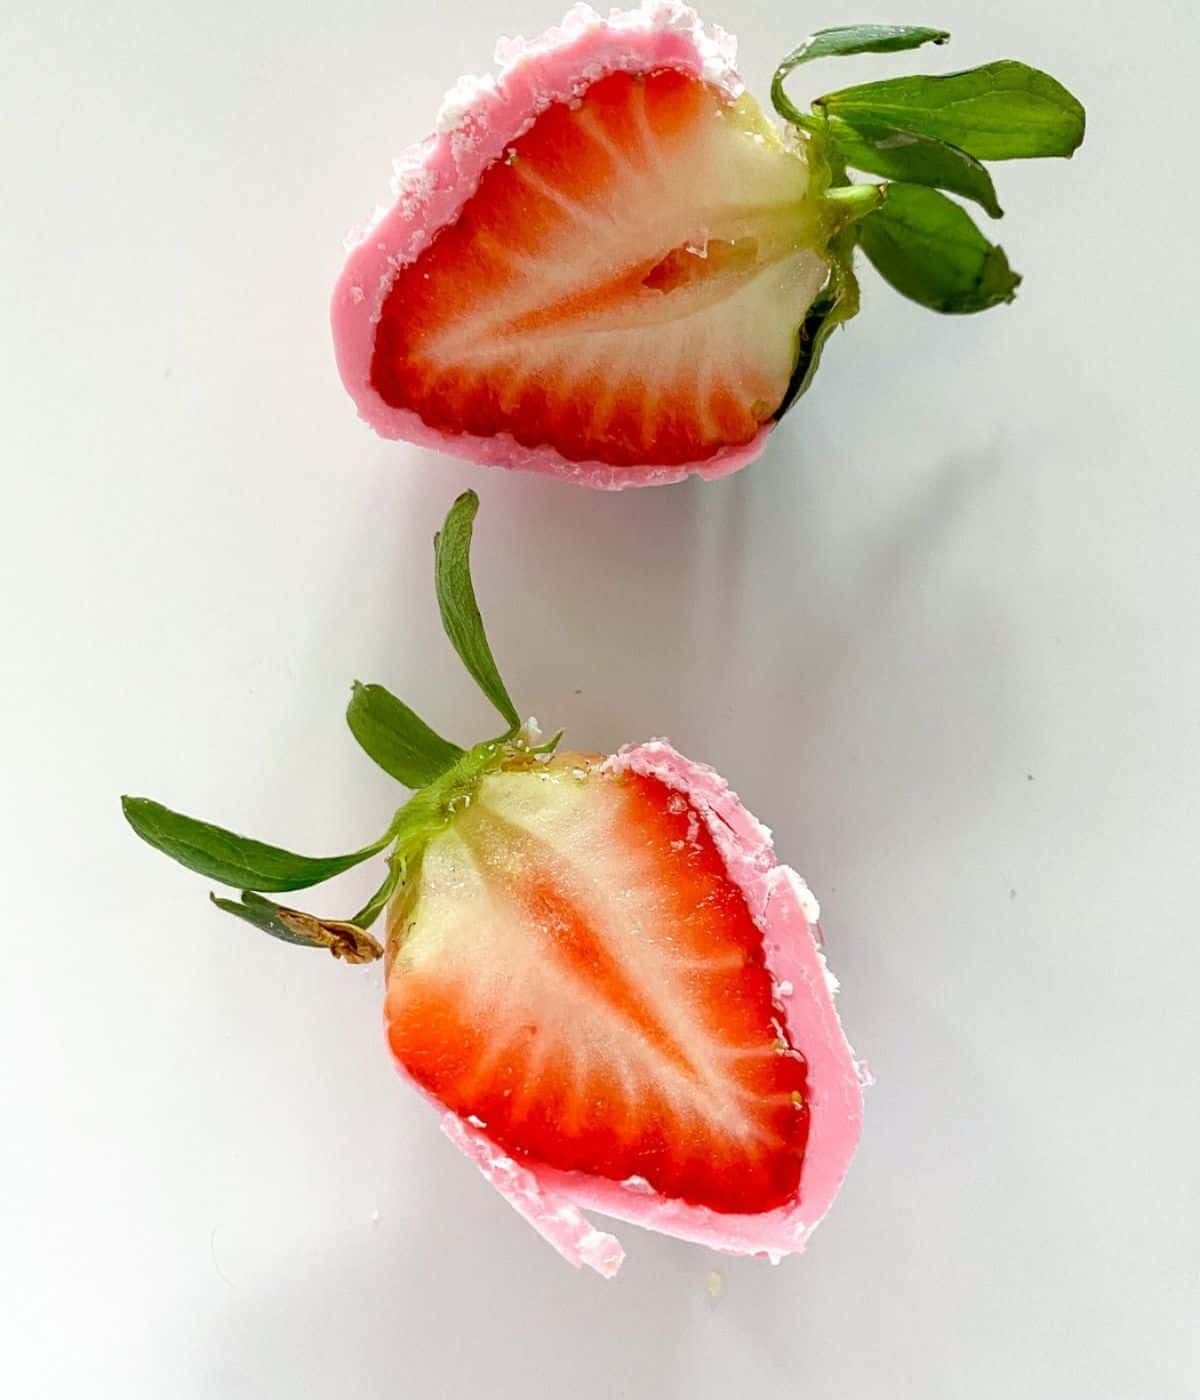 pink chocolate covered strawberry sliced in half.